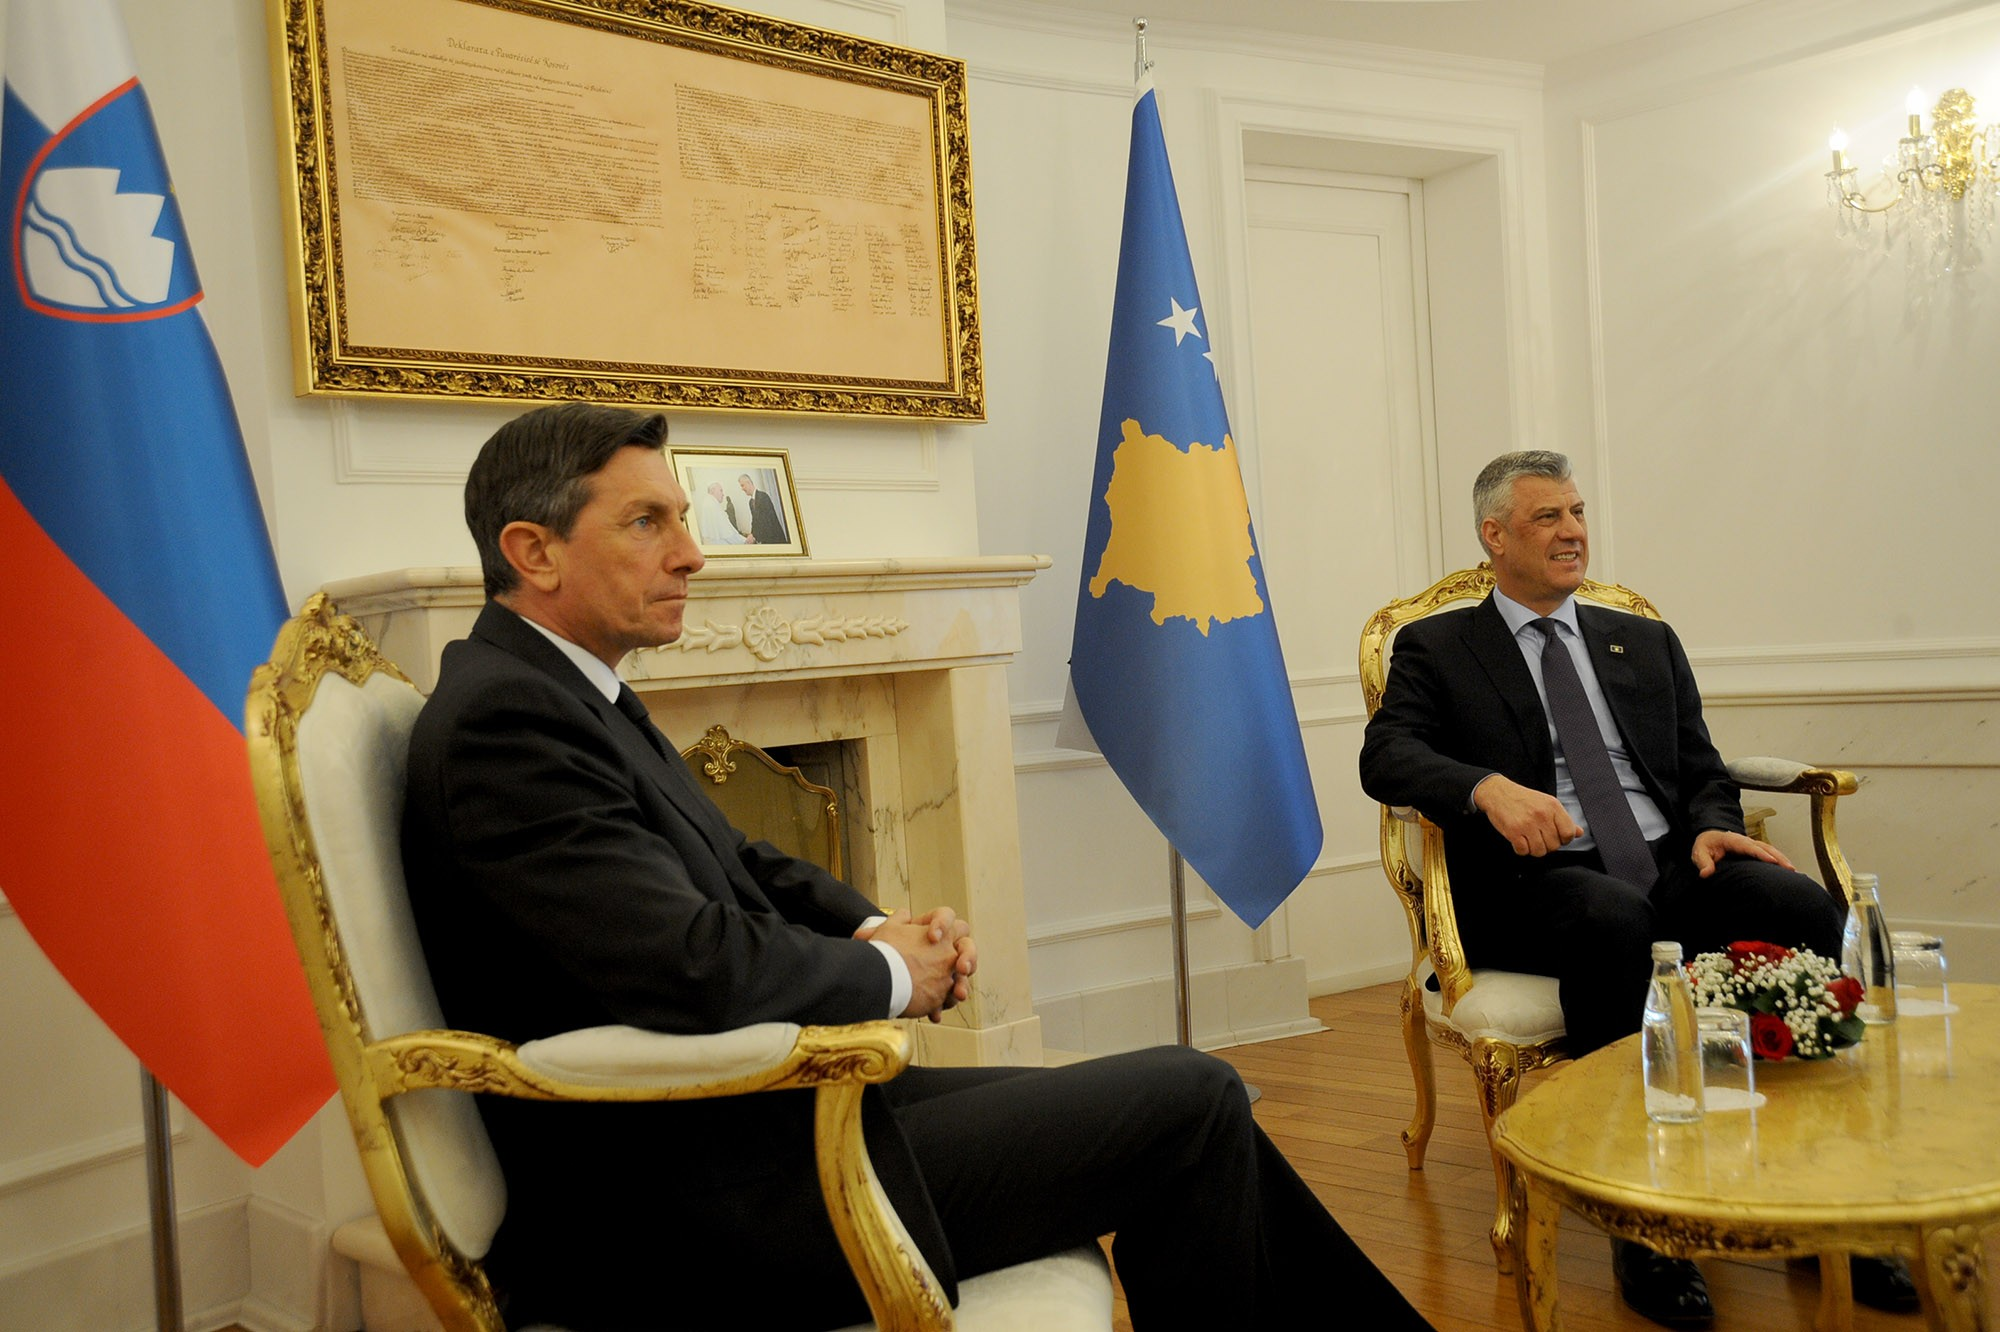 President Thaçi received the President of Slovenia, Borut Pahor